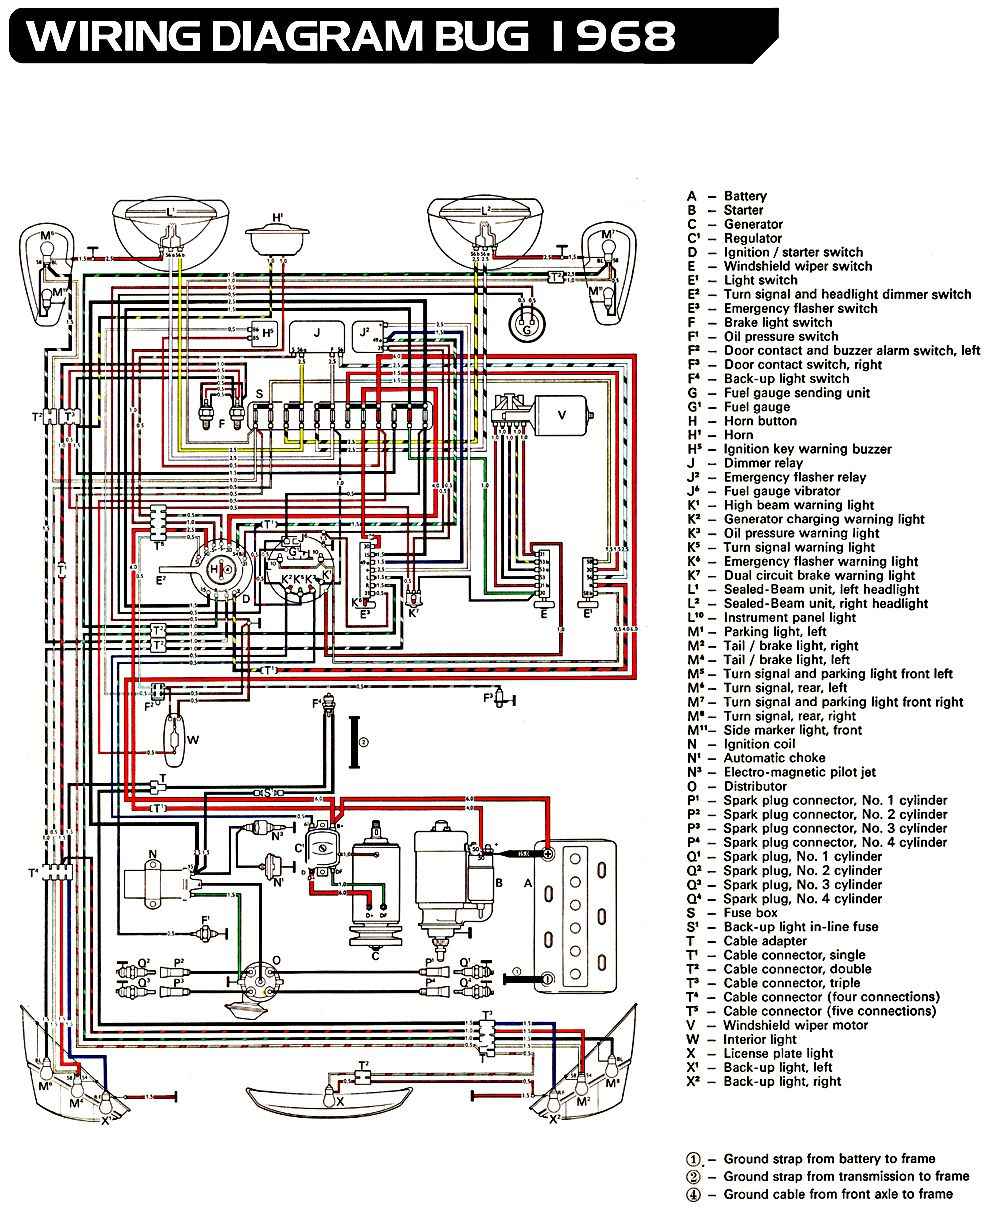 3a1908112d3826270ed5e3be362292bf vw bug ignition wiring diagram 73 vw wiring diagram free 1965 vw beetle wiring diagram at edmiracle.co